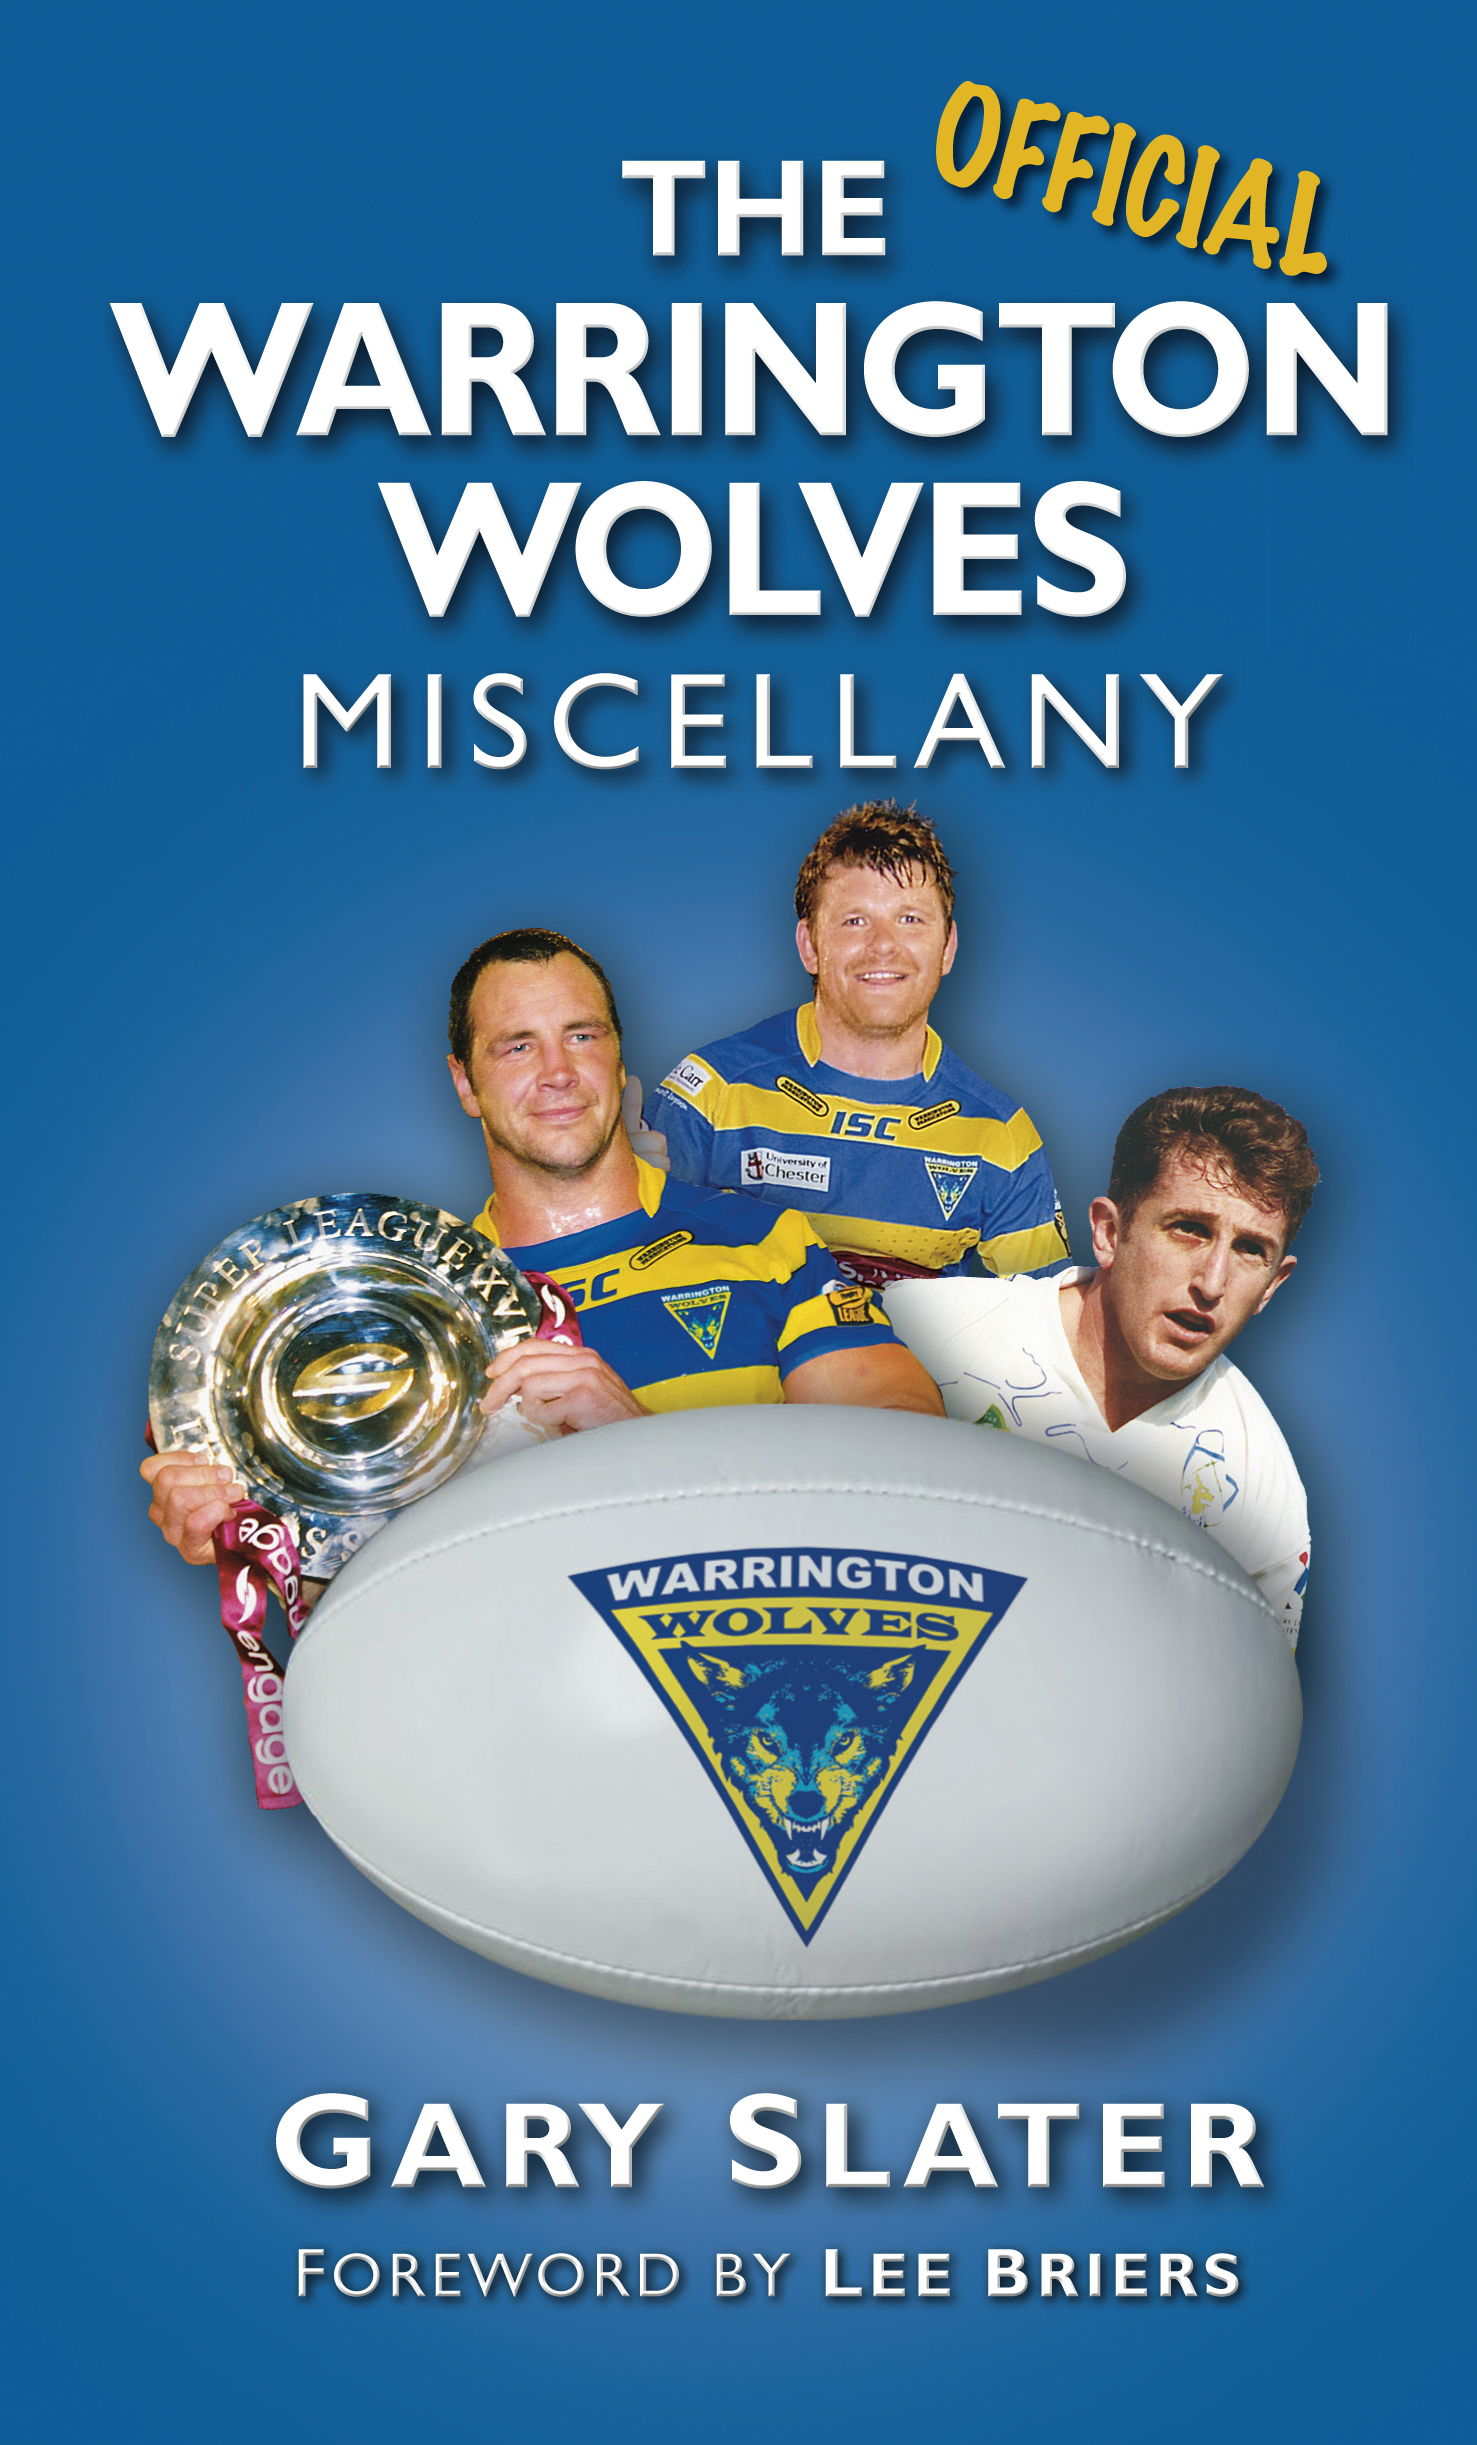 The Warrington Wolves Miscellany By: Gary Slater,Lee Briers